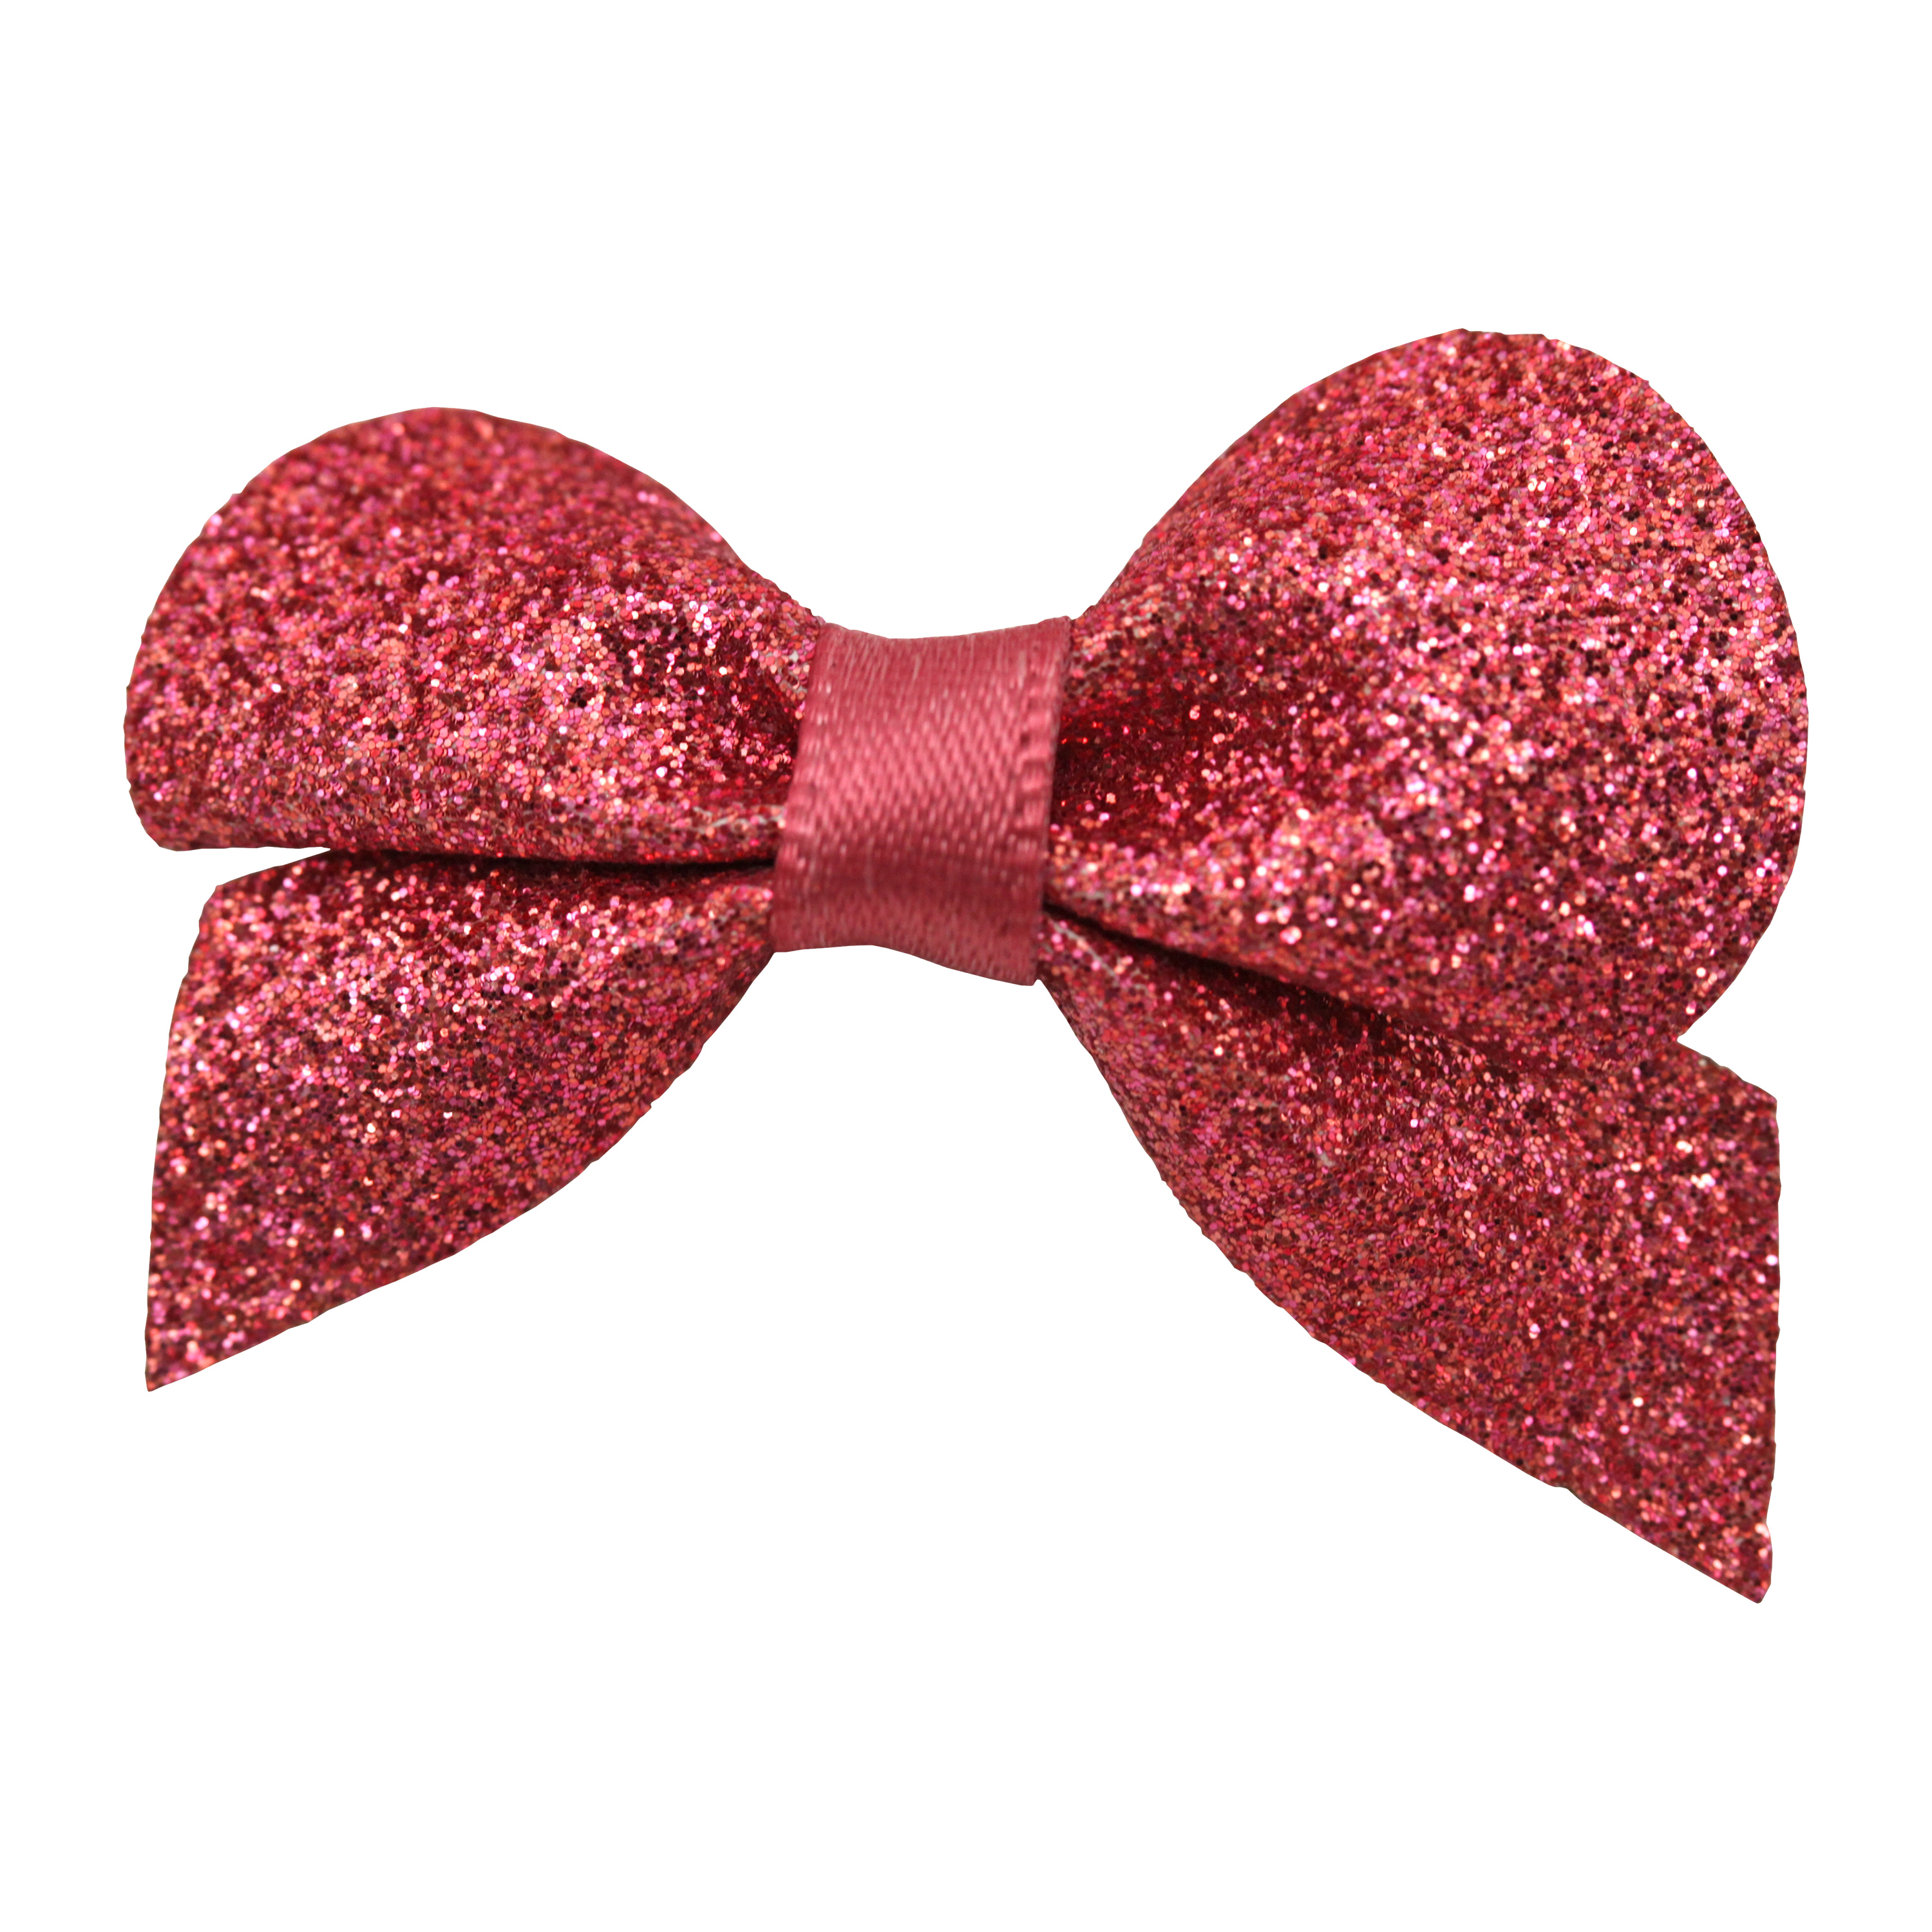 Satin Hot-Pink Glittery Bow